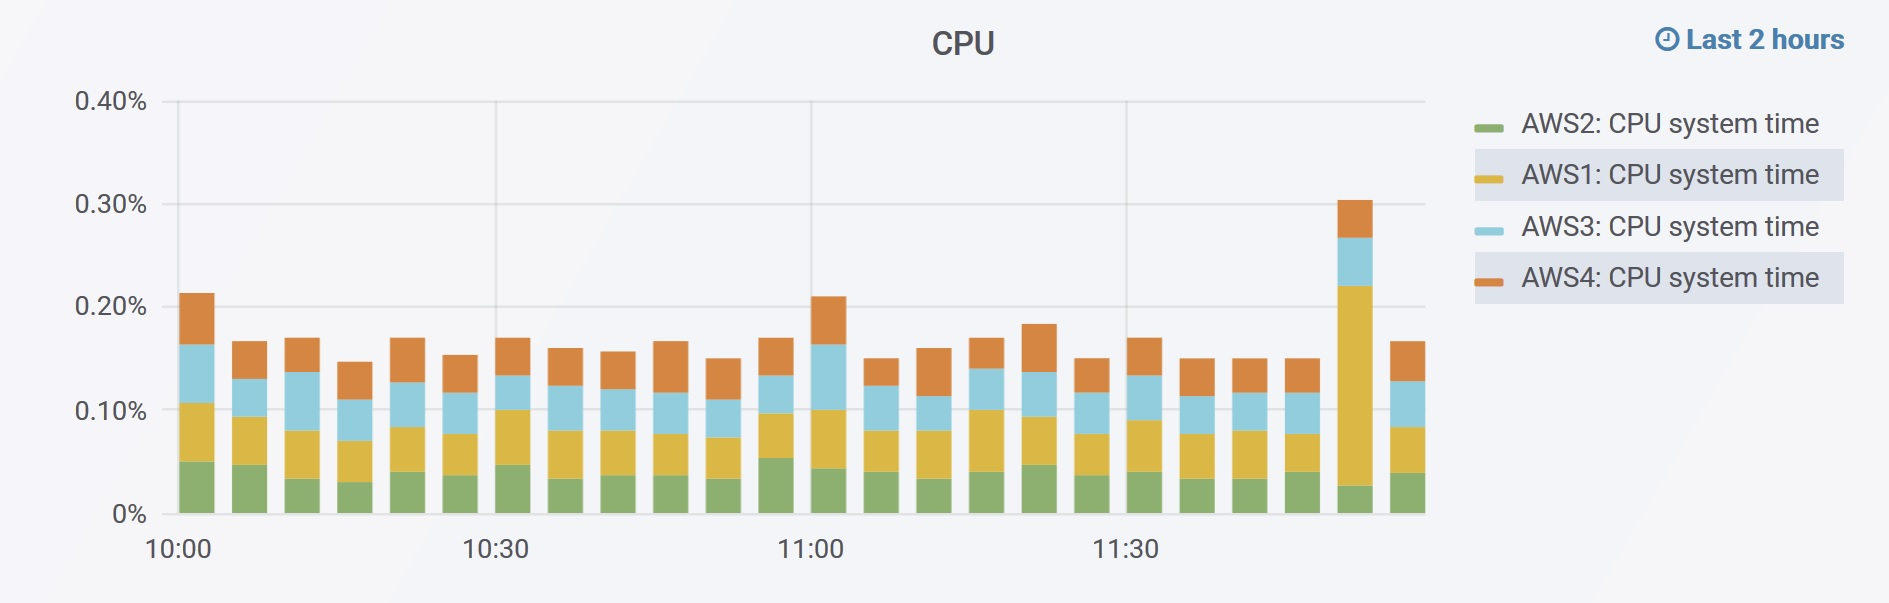 aws grafana graph